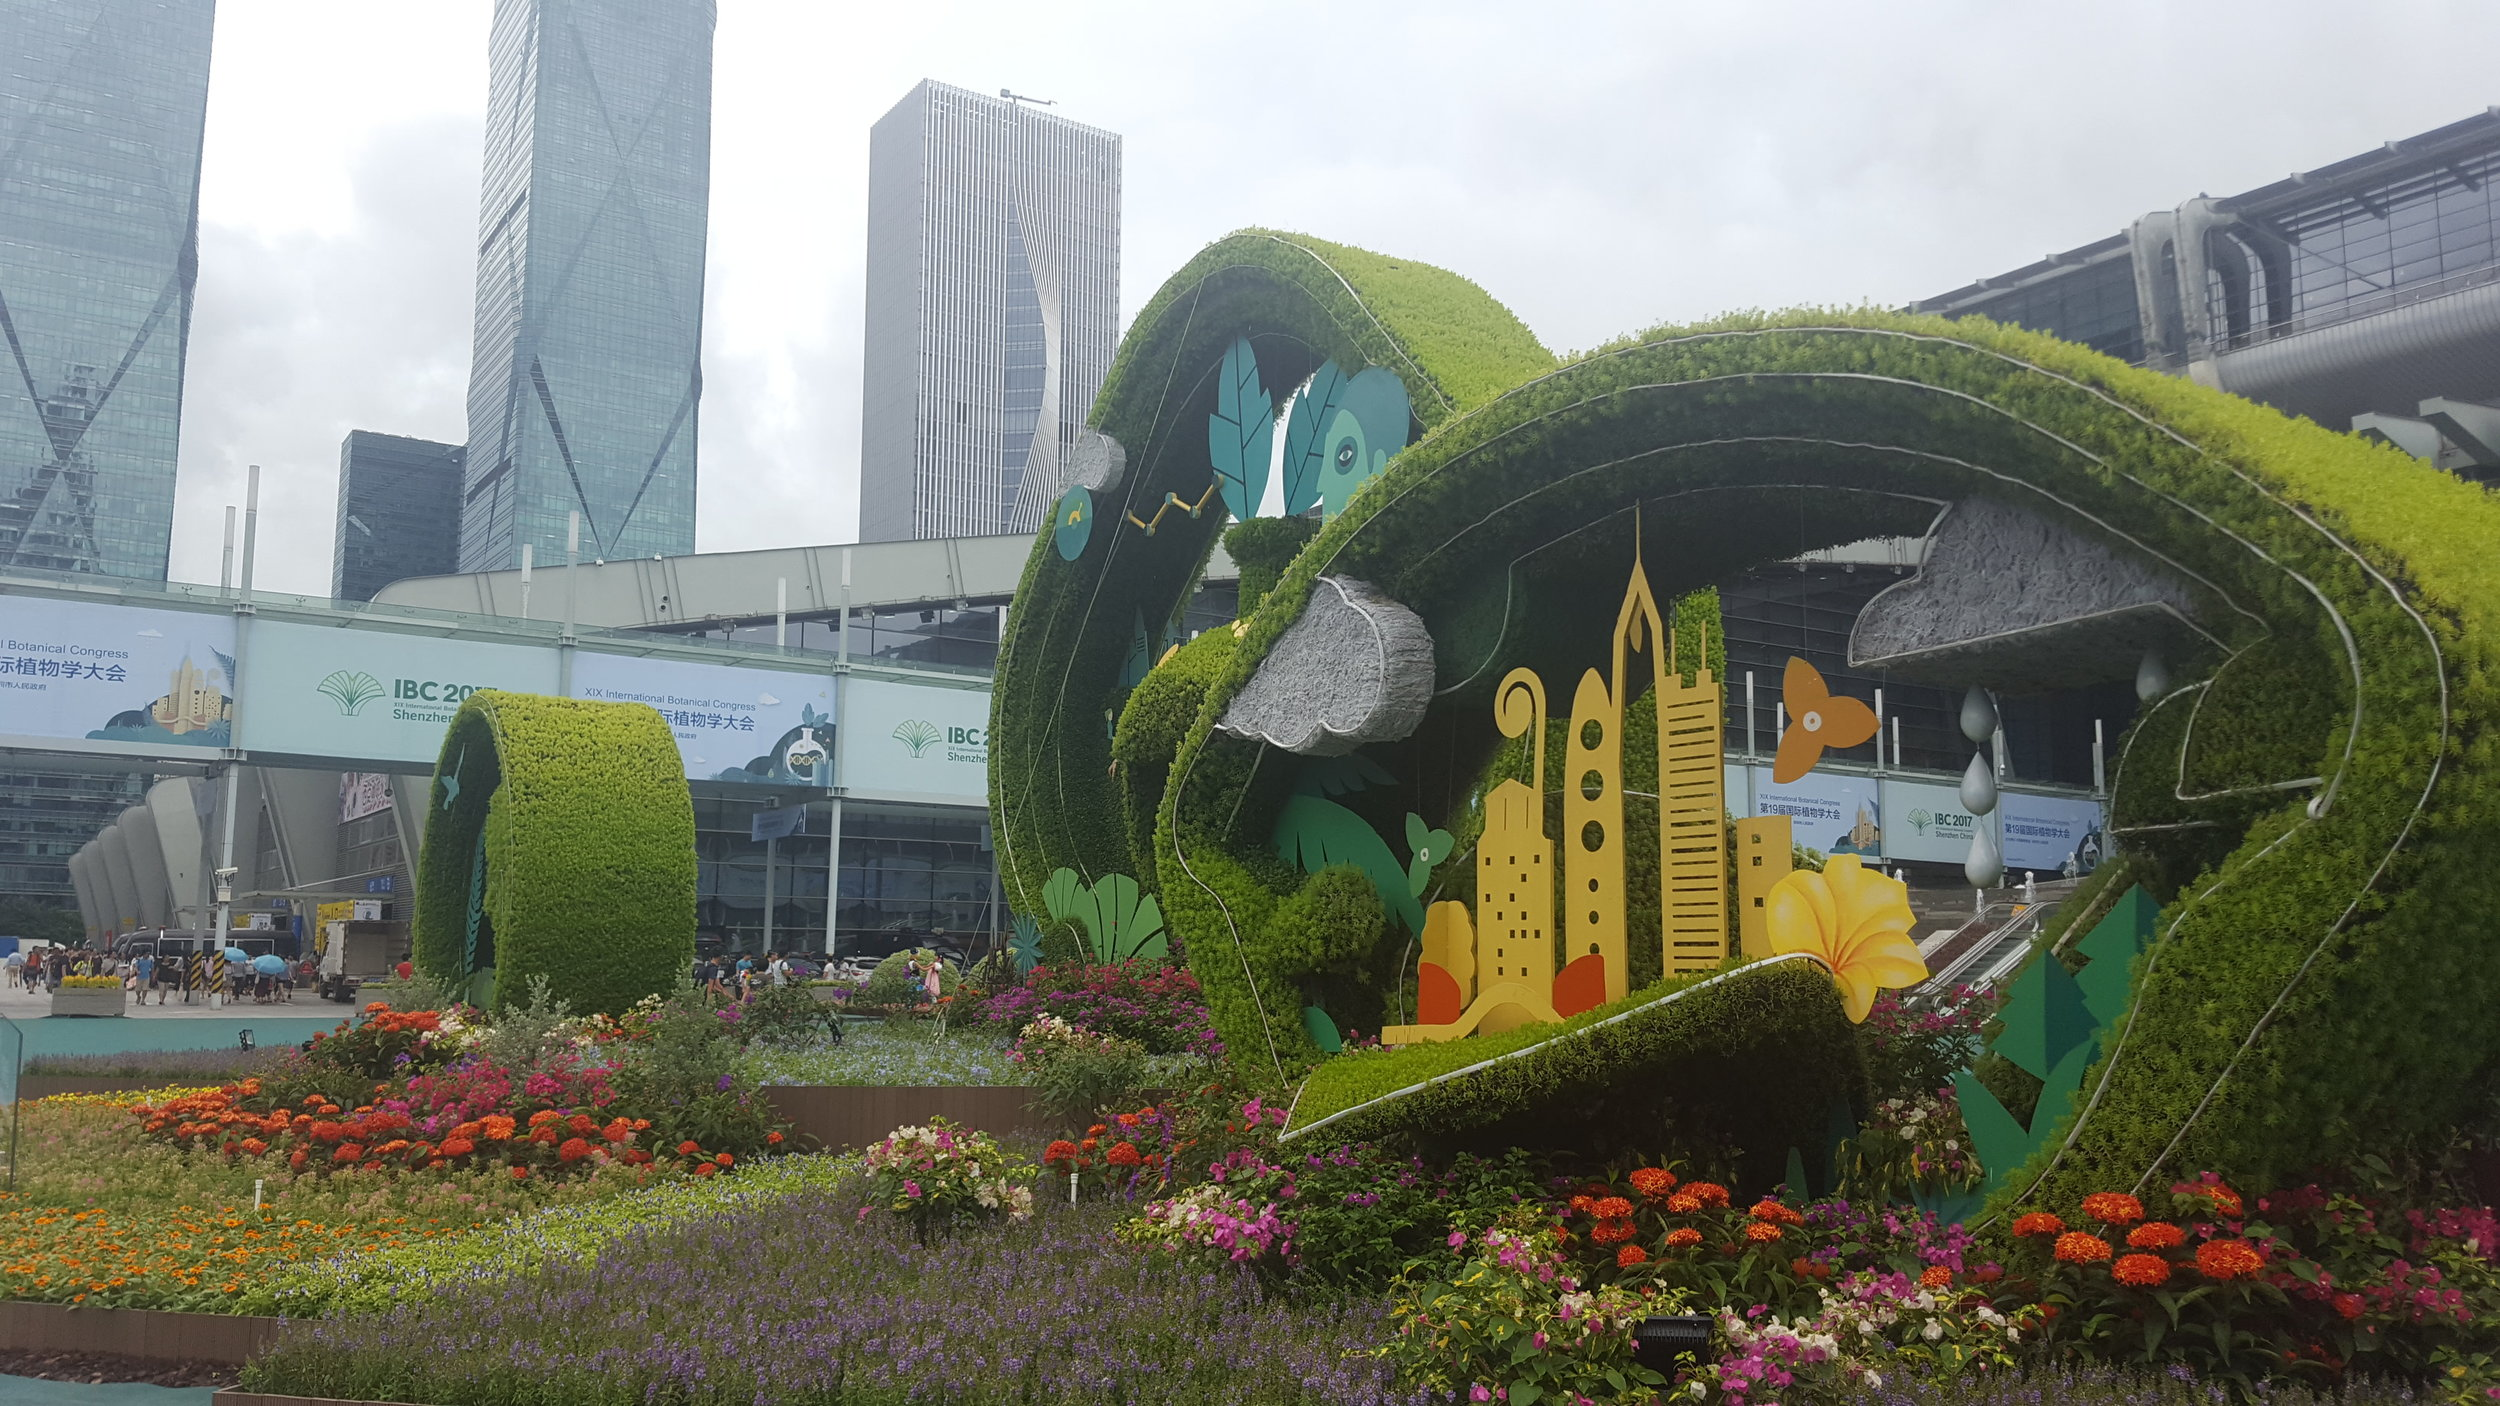 Amazing horticultural work and sculptures in front of the IBC!